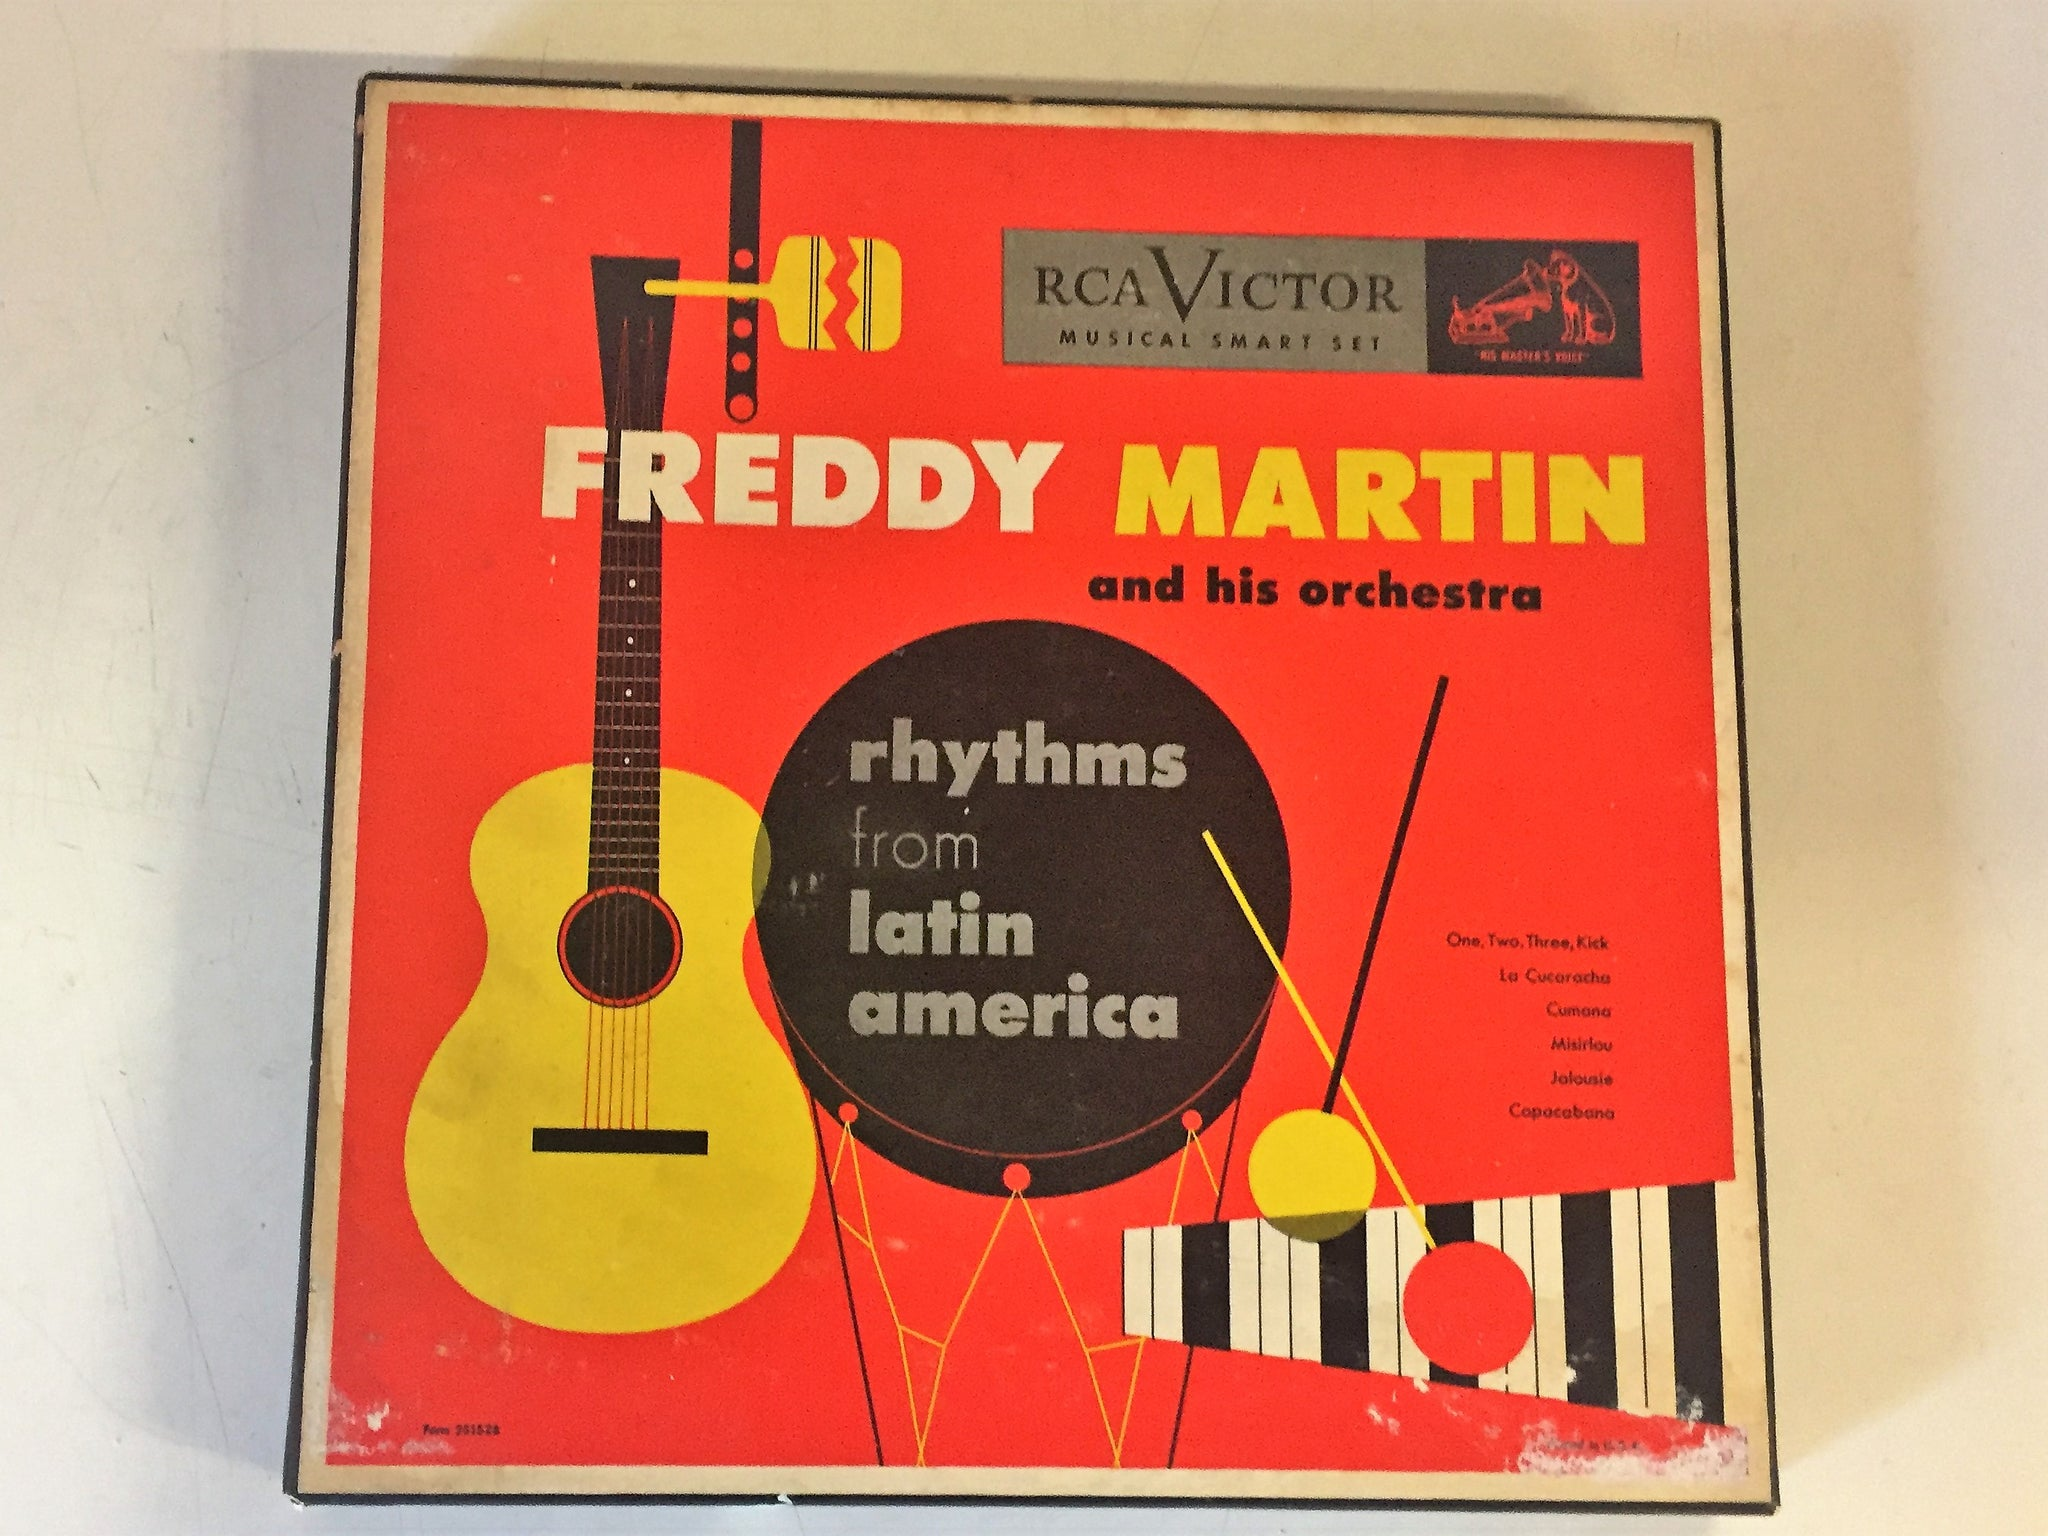 Vintage Freddy Martin And His Orchestra Rhythms From Latin America 45 RPM Box Set